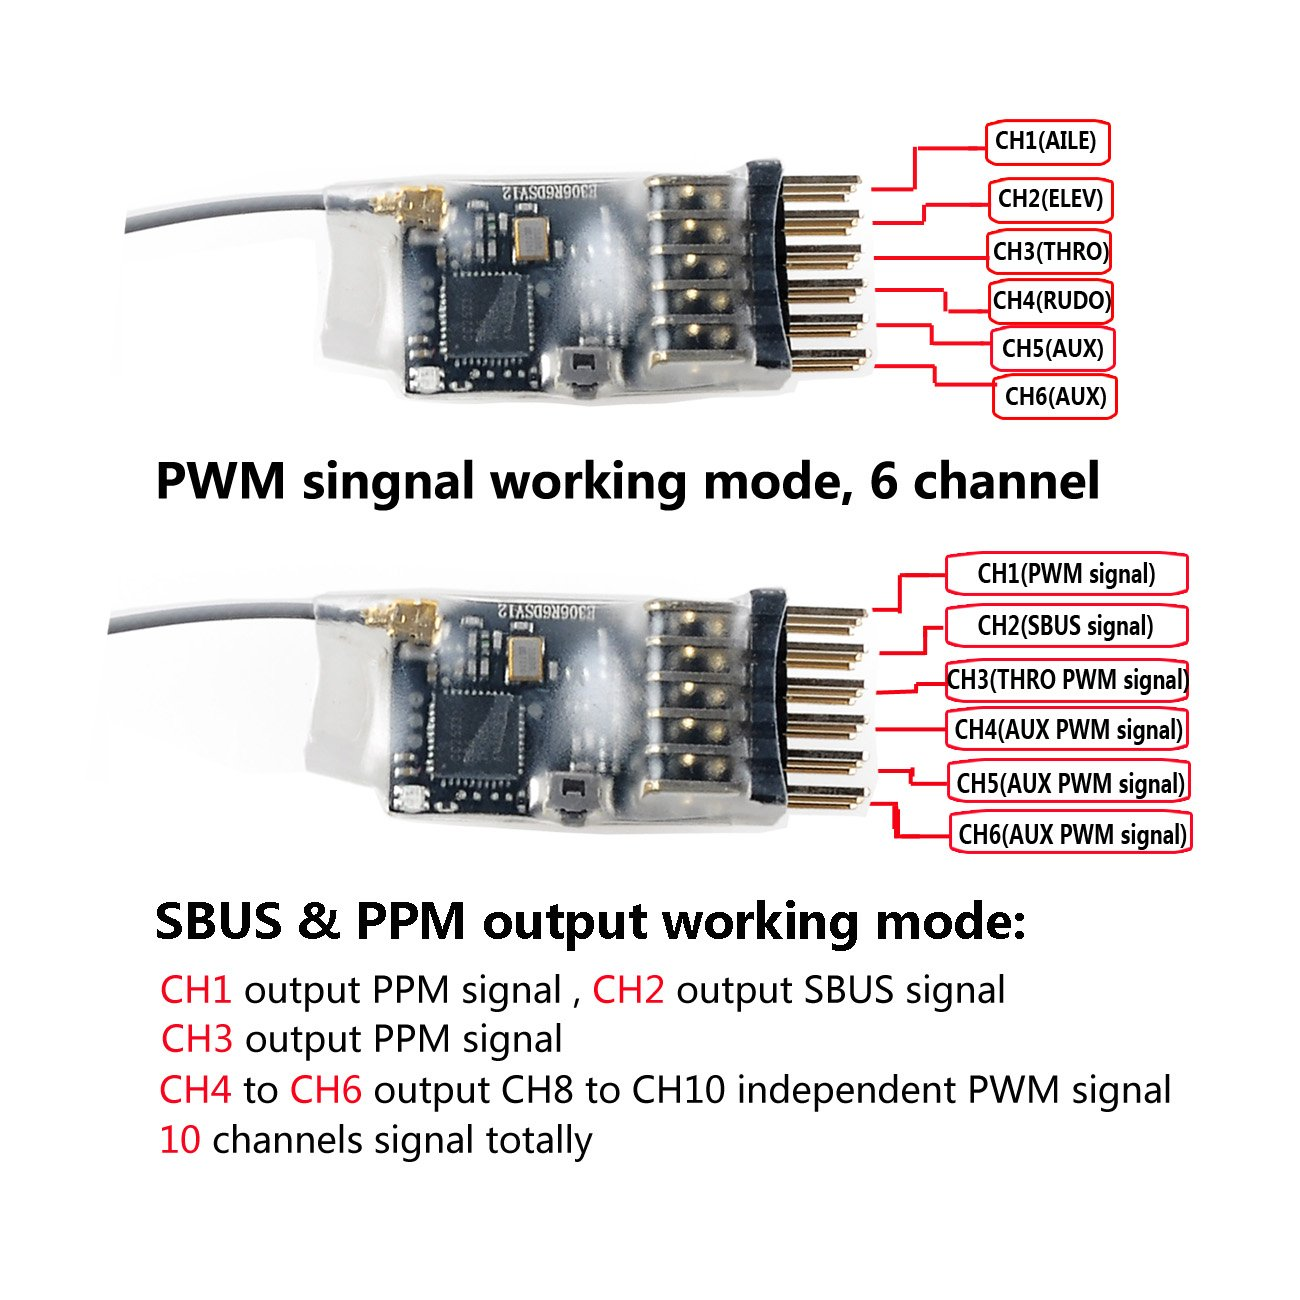 Radiolink R6ds 6ch Receiver Ppm Pwm Sbus Output 3ms Response Mini Orangerx Kk2 Wiring Diagram Compatibile With Rc Transmitter For Fpv Racing Drone Quadcopter By